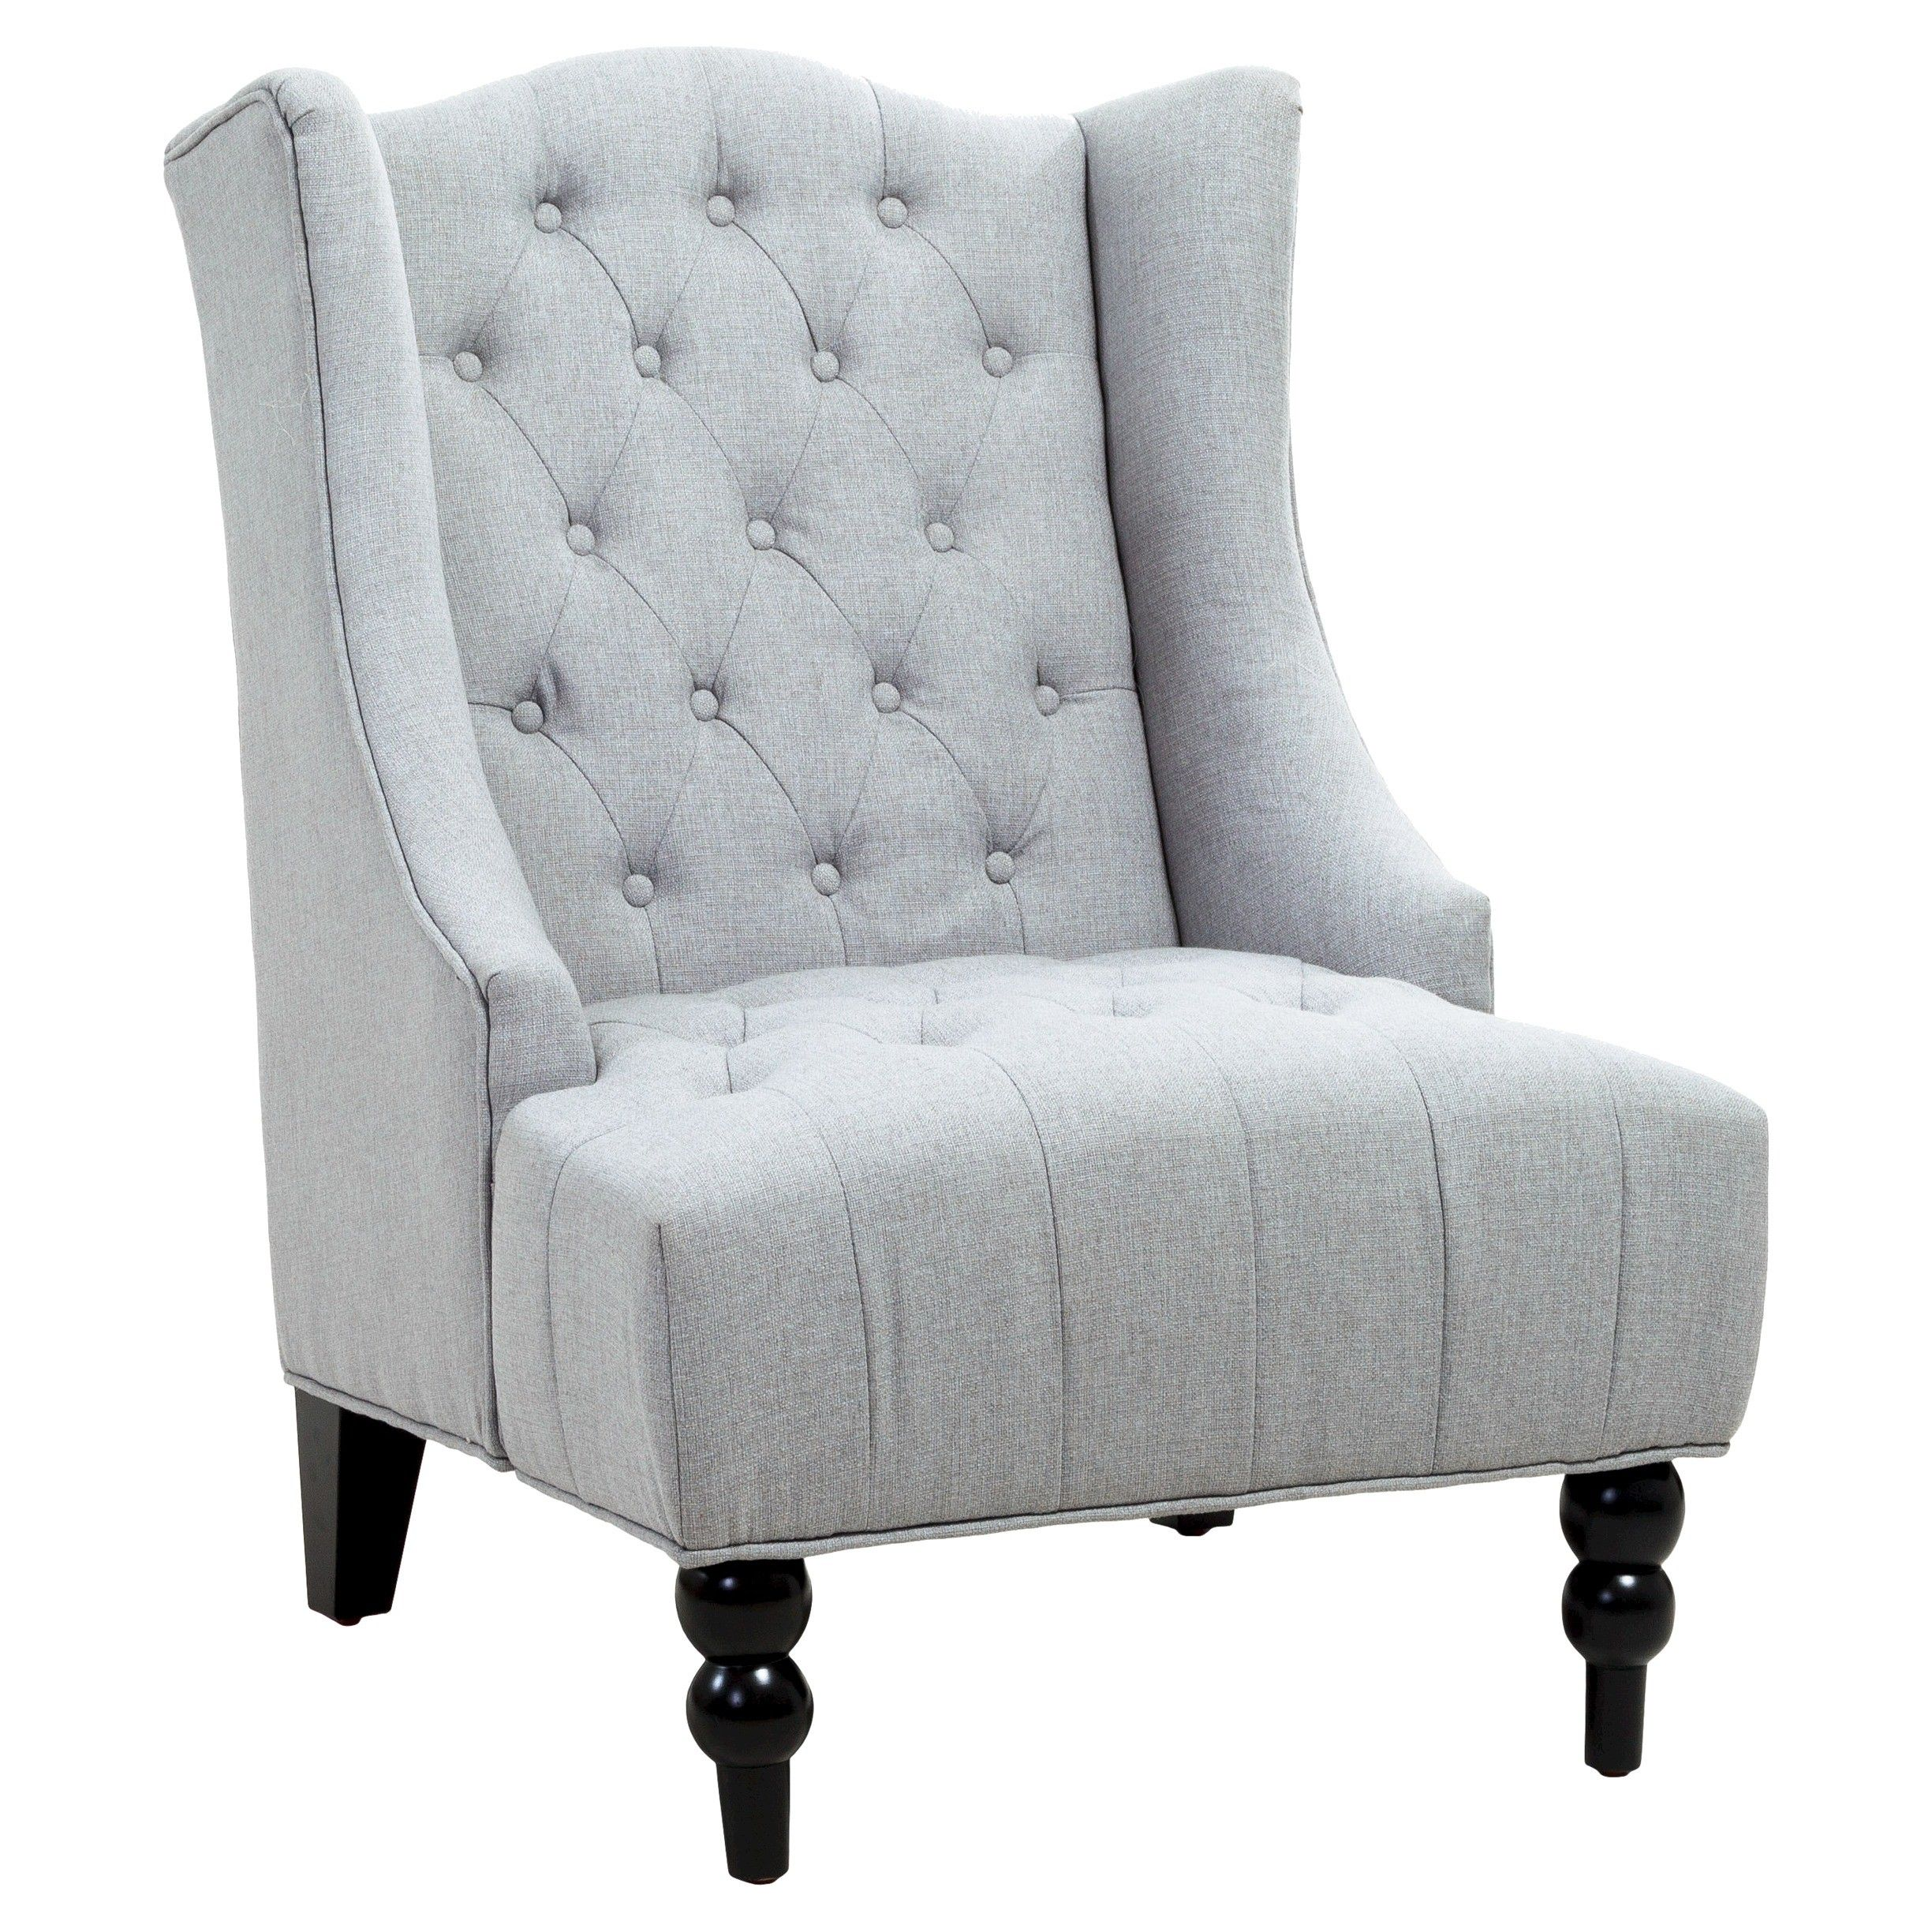 Christopher Knight Home Upholstered Chair Gray Tar